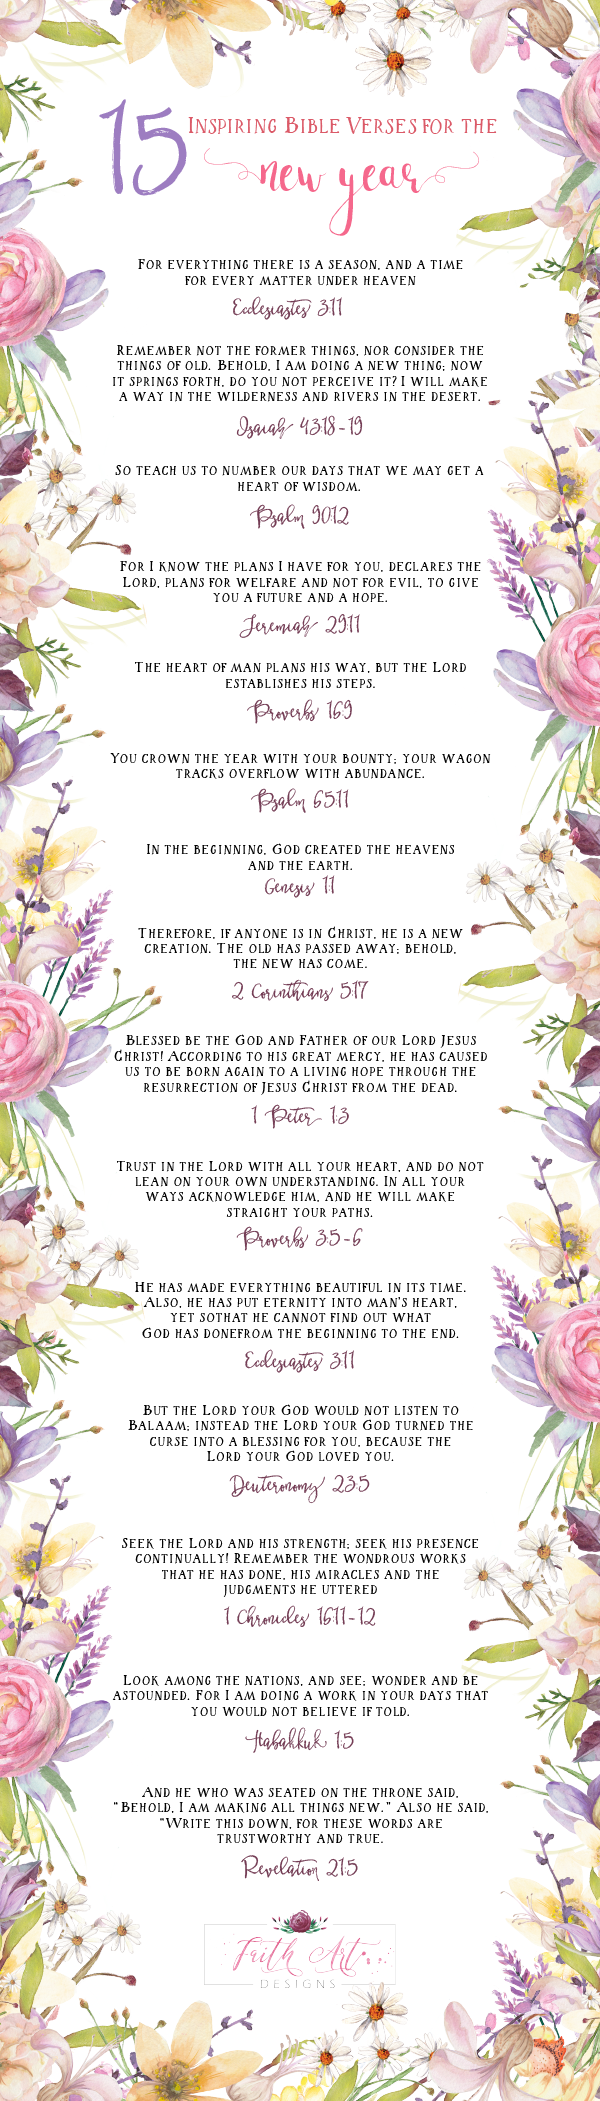 15 Inspiring Bible Verses for the New Year! | Quotes | Pinterest ...